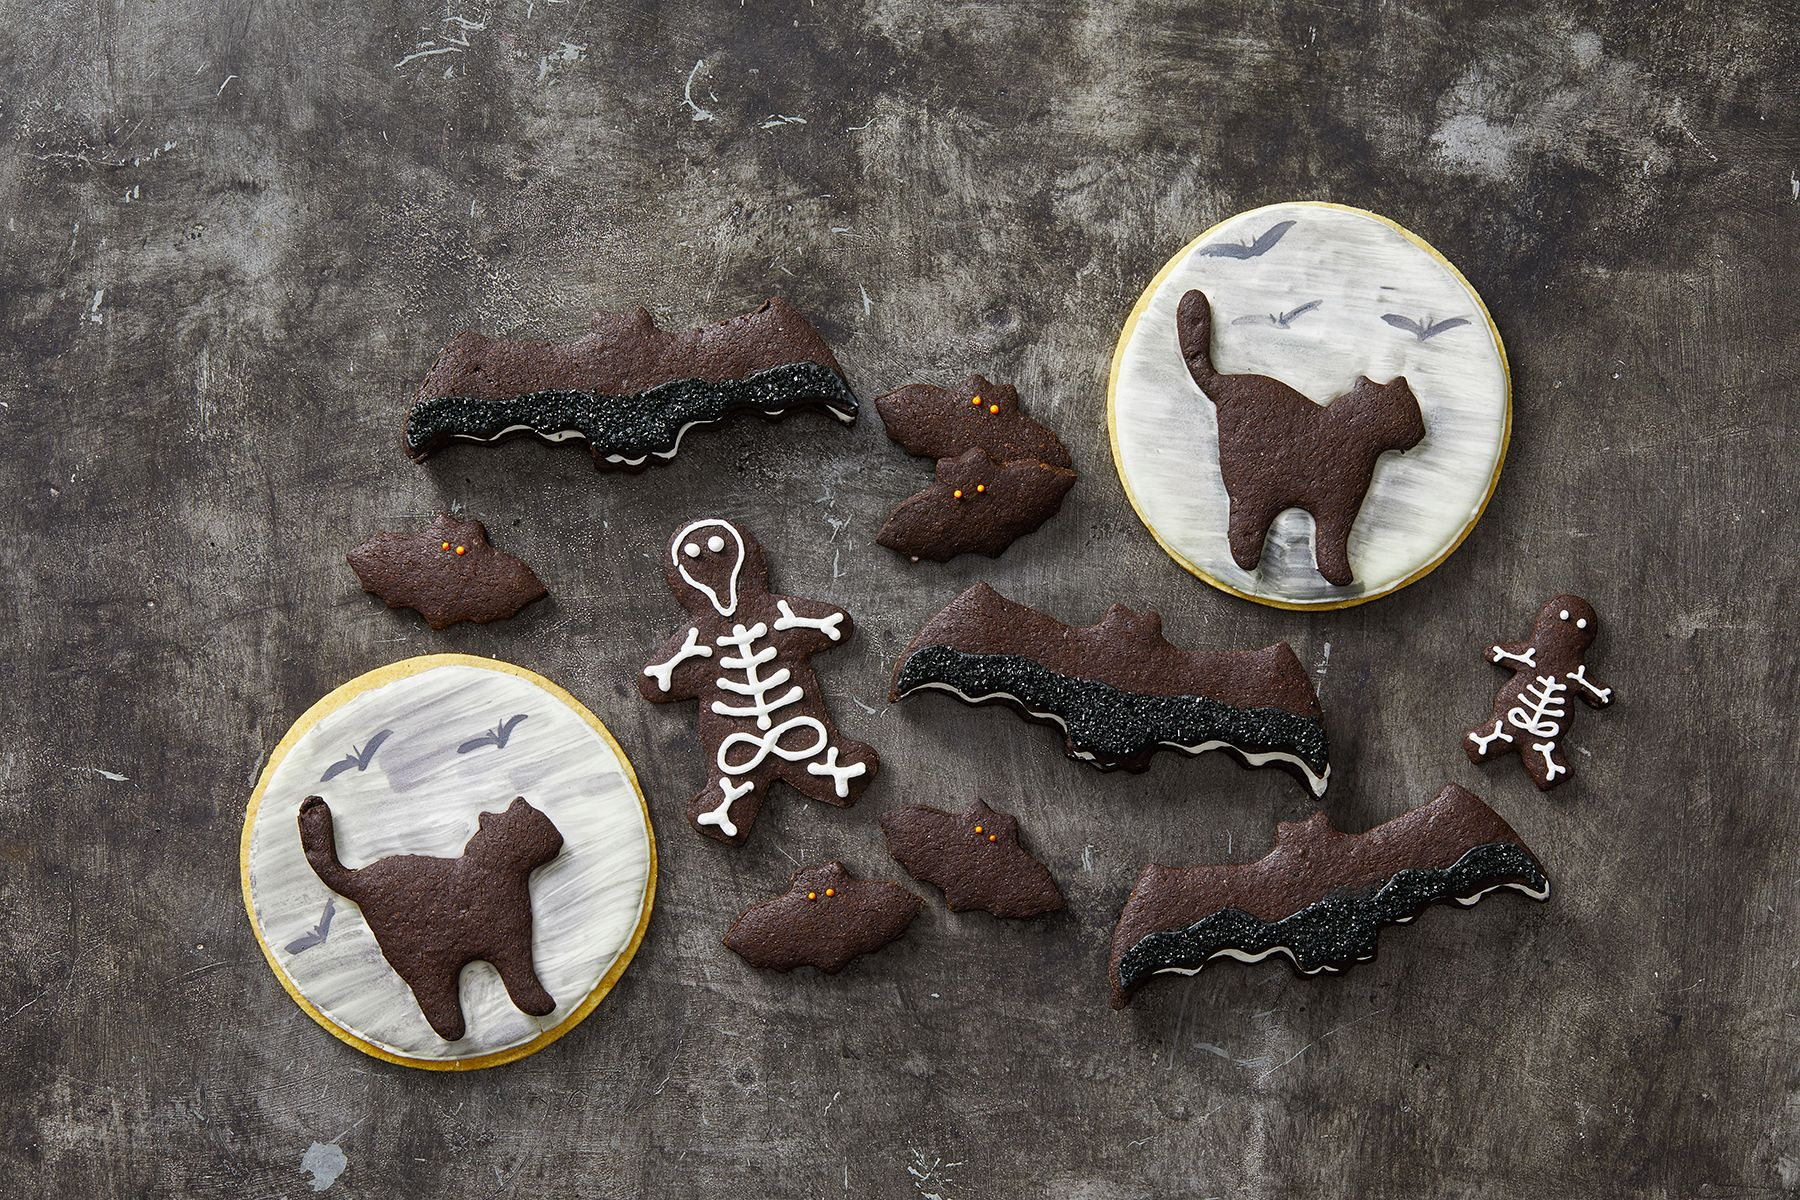 How Do You Make Halloween Cookies.42 Homemade Halloween Cookie Ideas Recipes Decorating Tips For Halloween Cookies